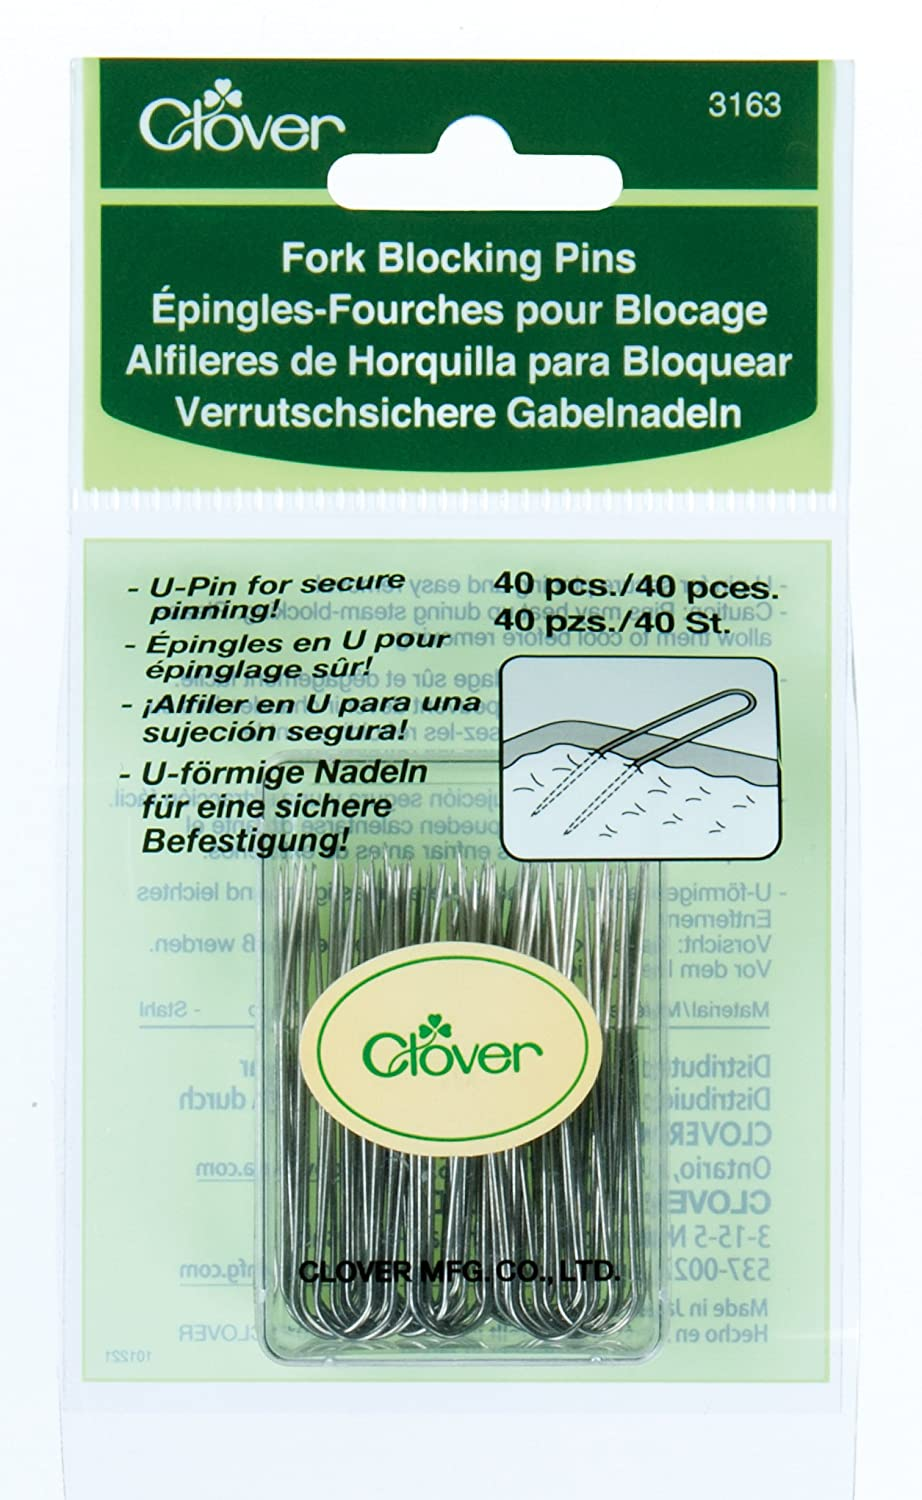 Clover 3163 Fork Blocking 40 Count U-Pins, 1-3/4-Inch CLOVER MFG. CO. LTD.